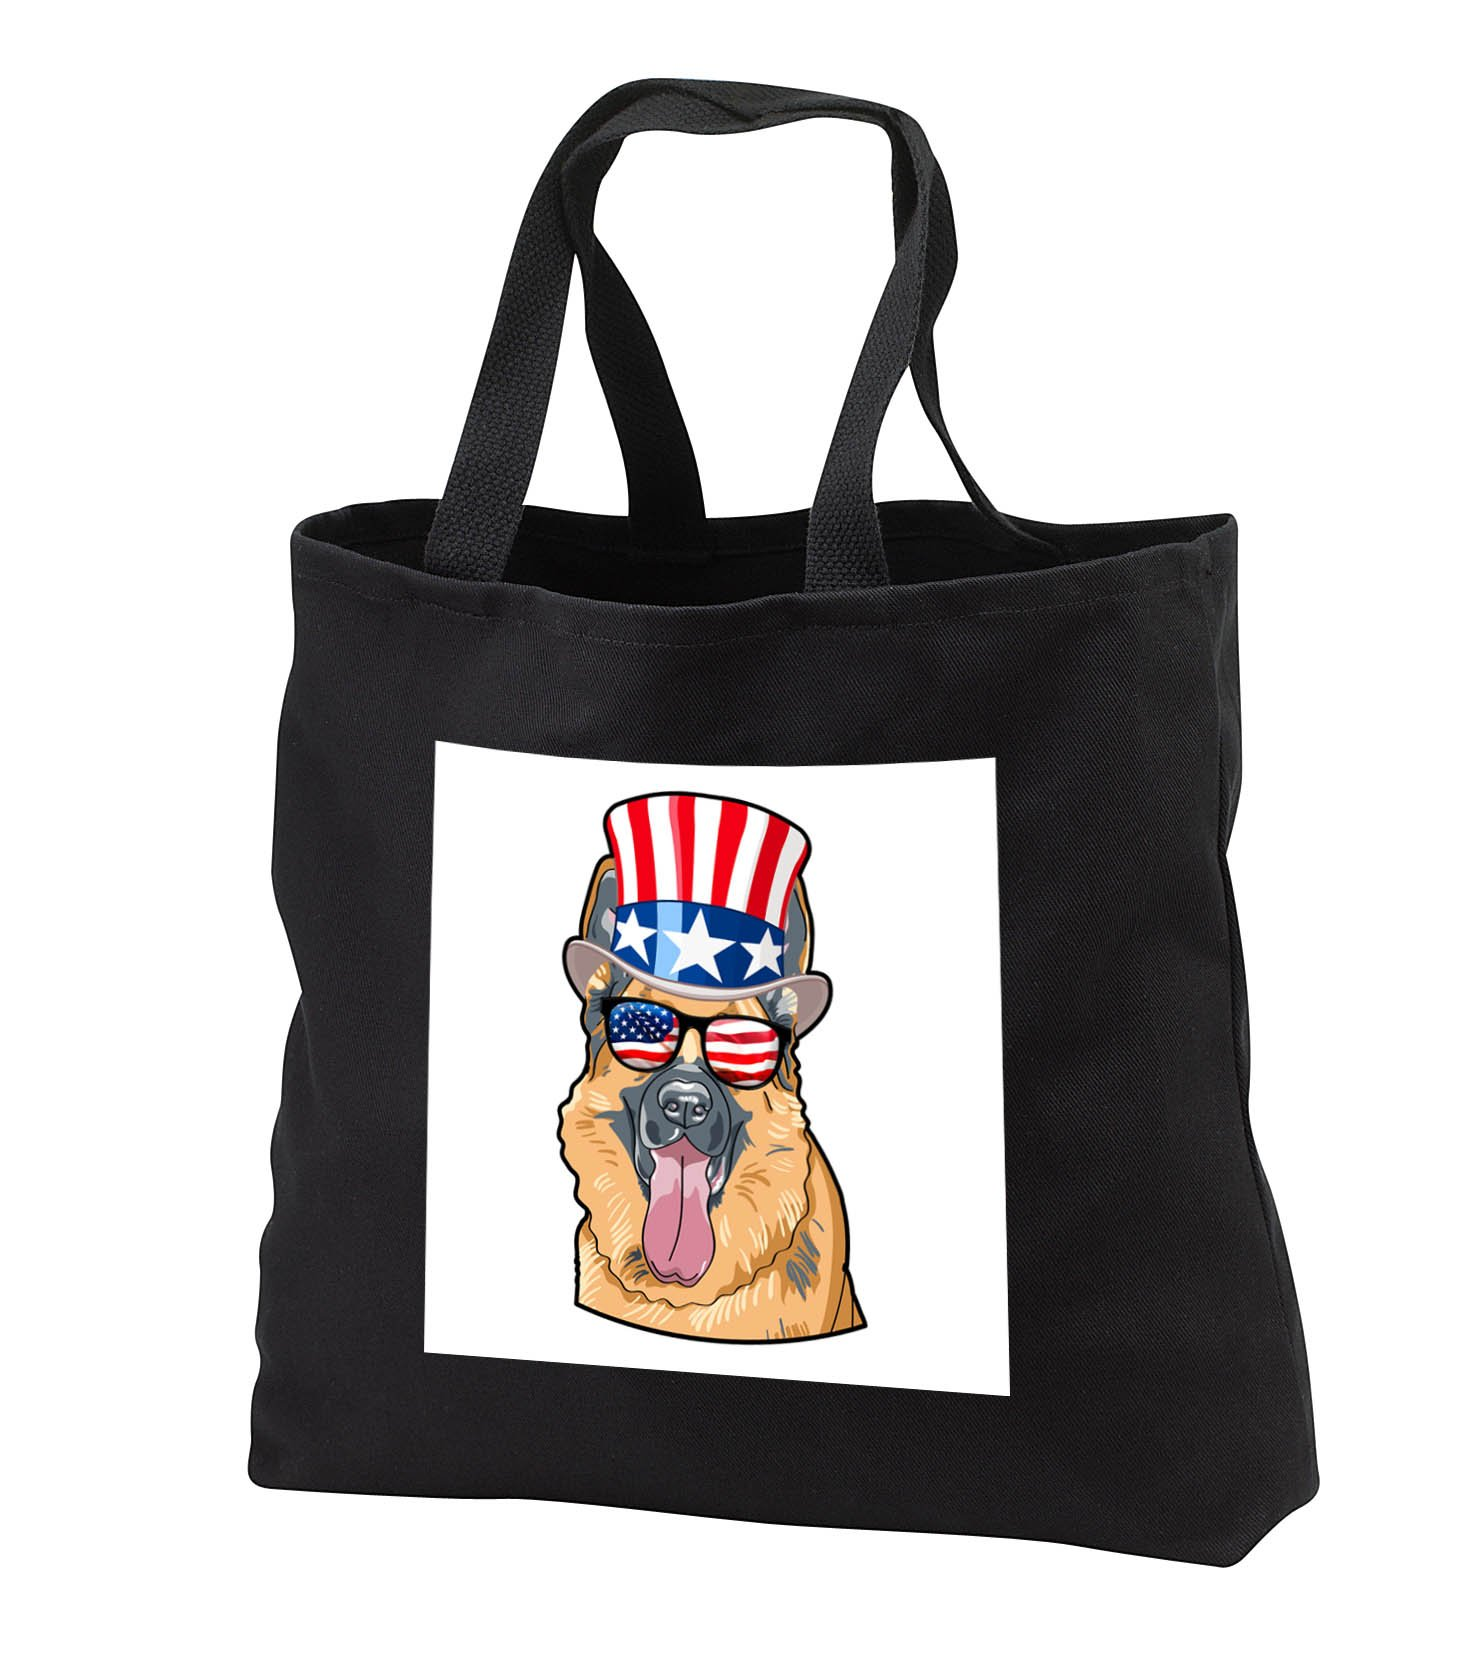 Patriotic American Dogs - German Shepherd Dog With American Flag Sunglasses and Top hat - Tote Bags - Black Tote Bag JUMBO 20w x 15h x 5d (tb_282708_3) by 3dRose